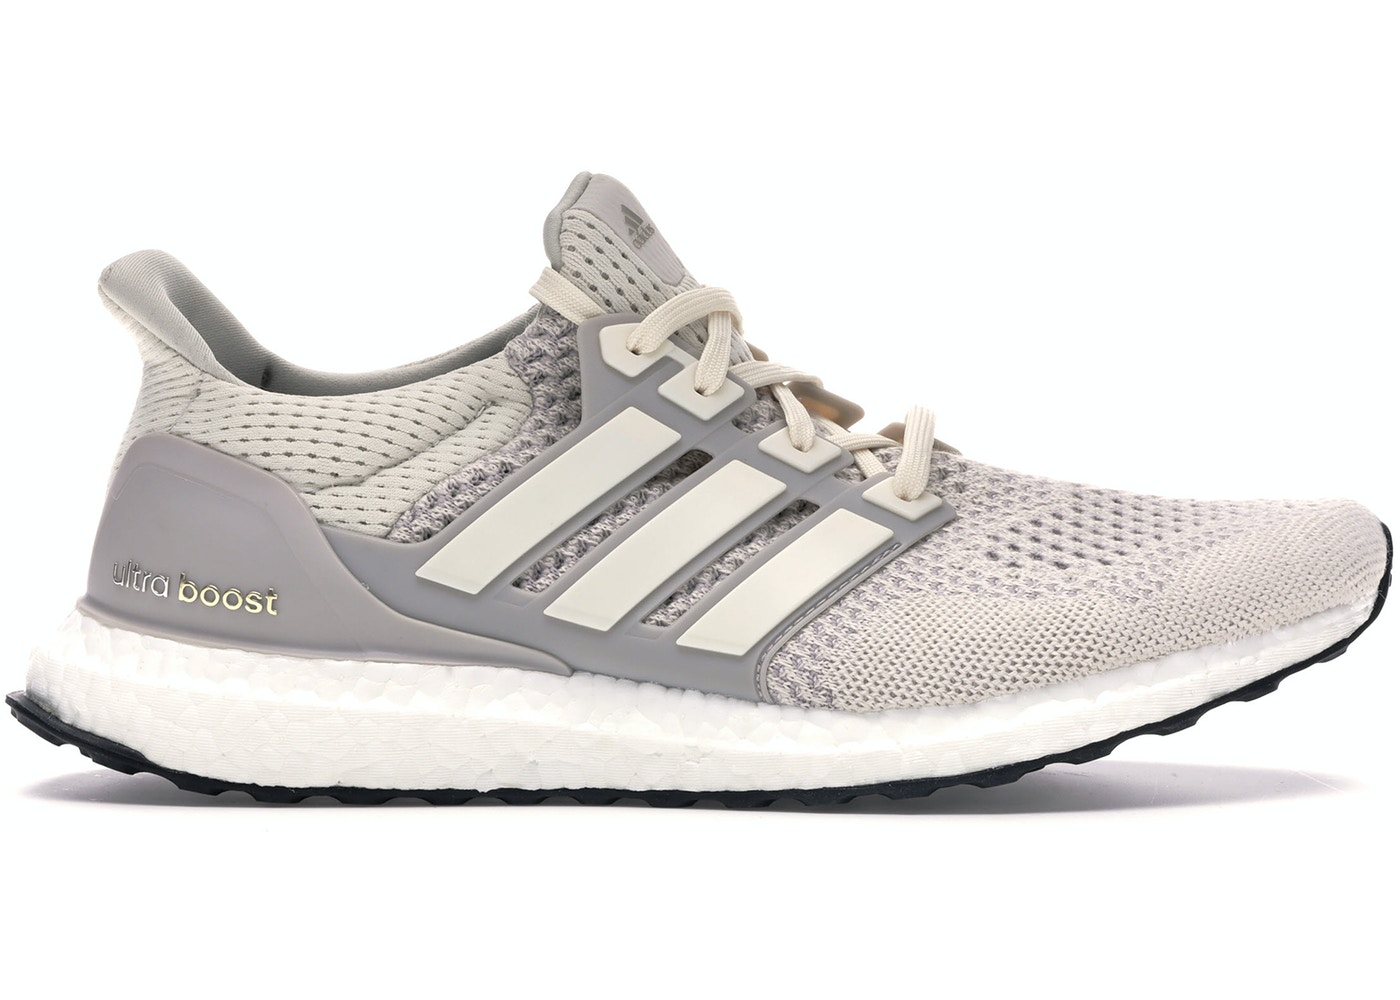 98b3585da adidas Ultra Boost 1.0 Light Tan Cream - AQ5559